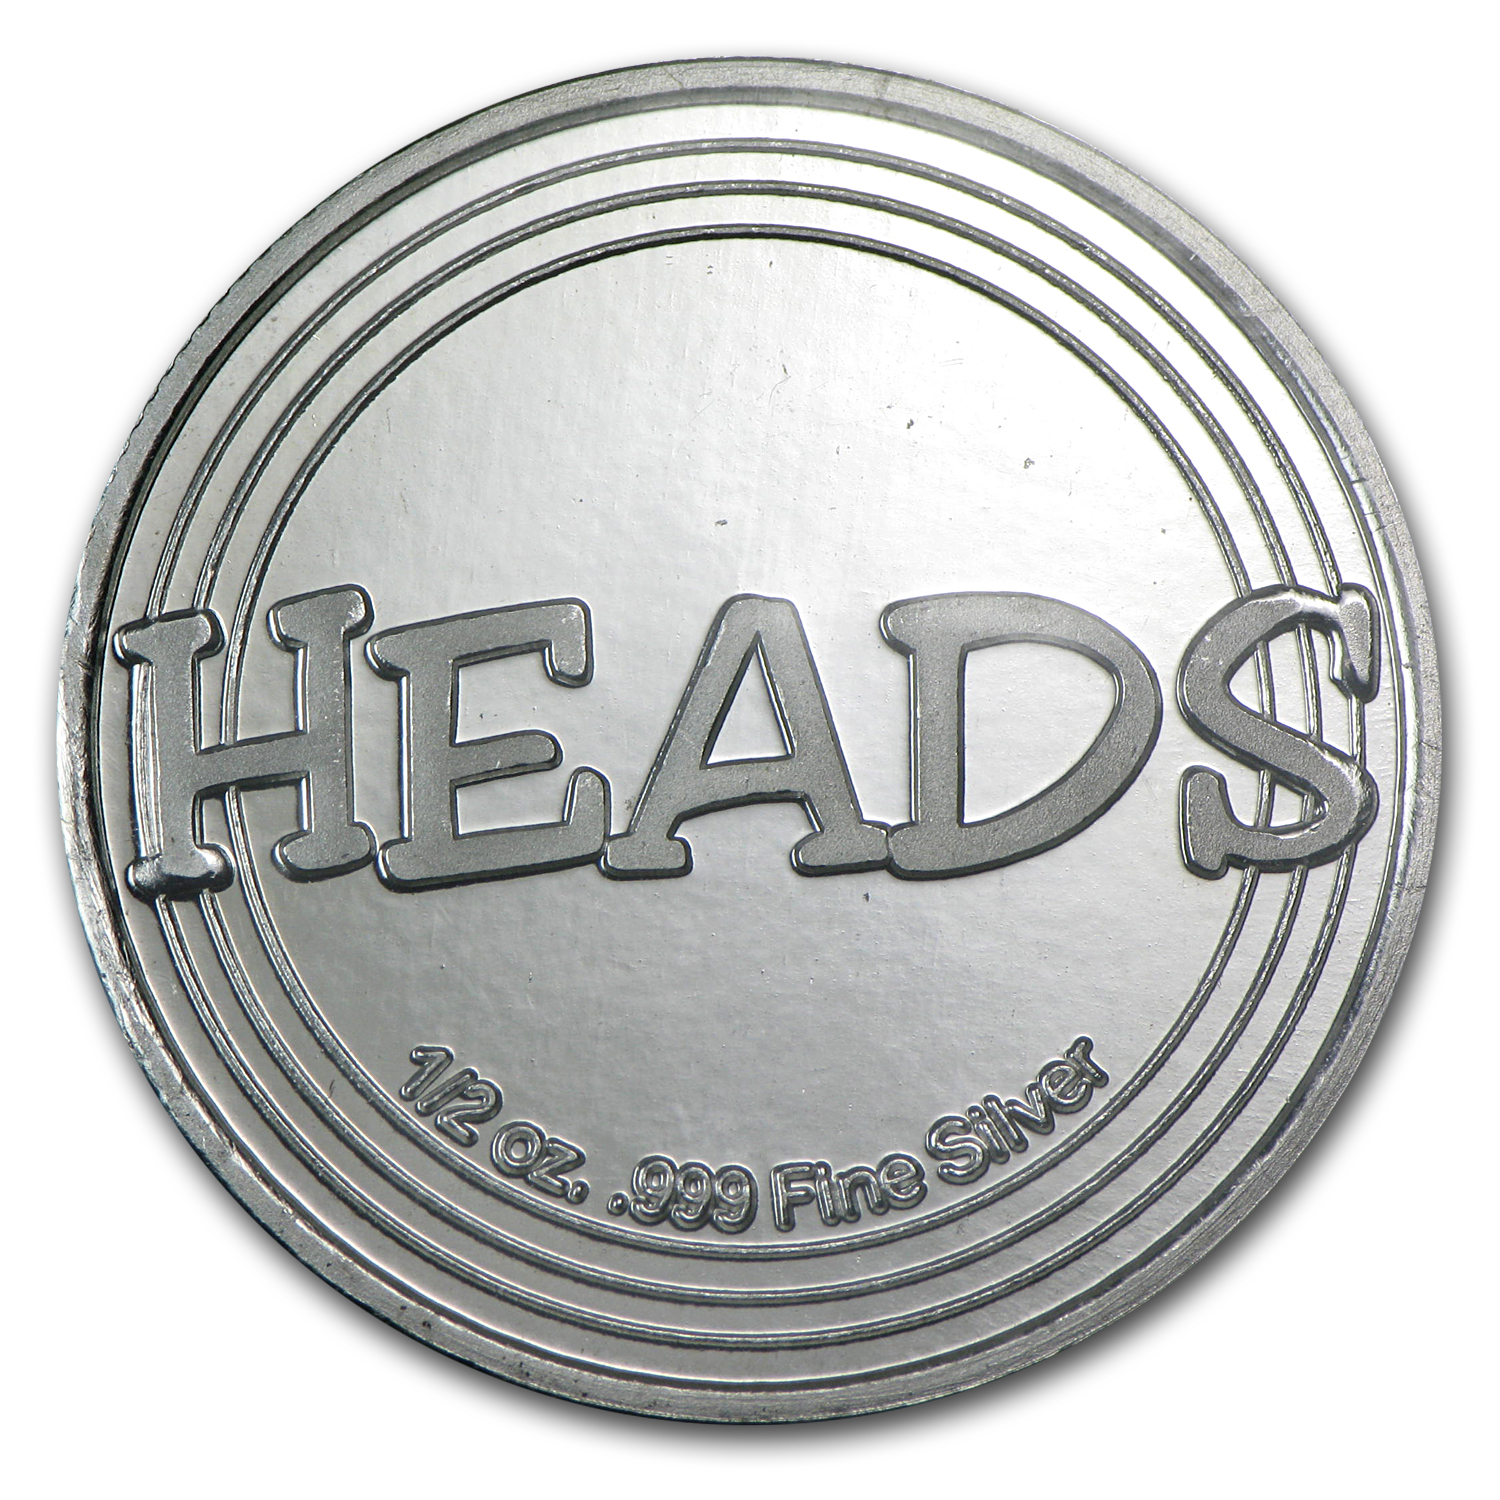 1/2 oz Silver Rounds - Heads or Tails Novelty